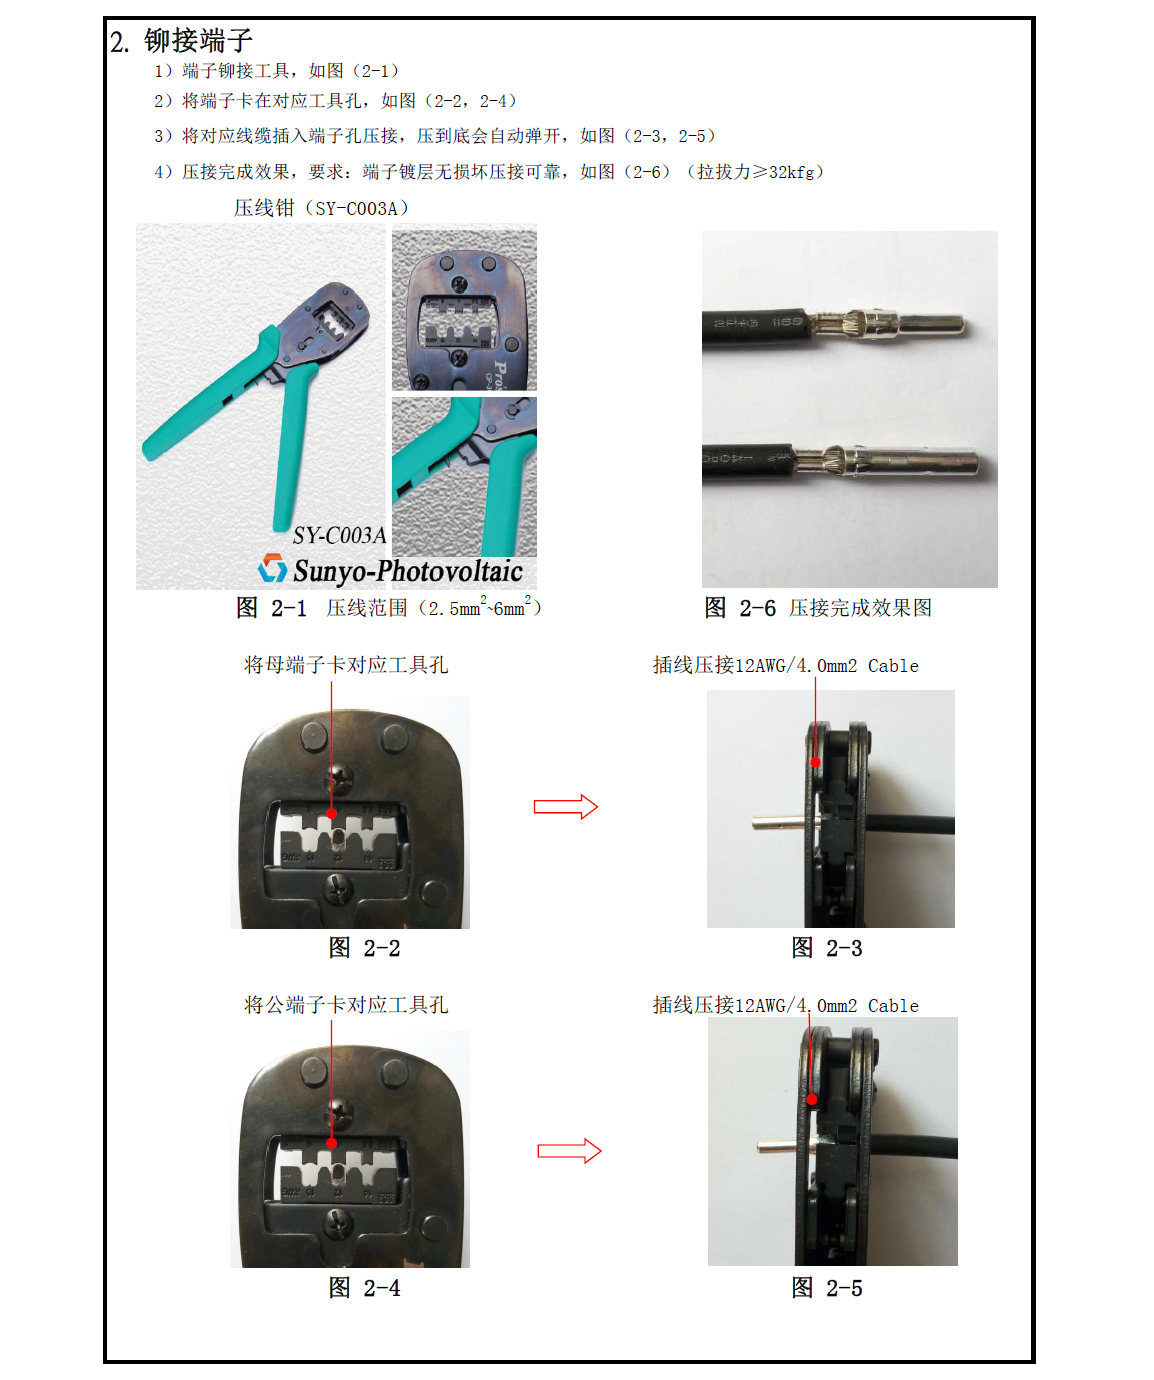 MC4 crimping tool stripping solar wire hand tools solar crimping tool kit for 2.5-6.0mm2 MC4 crimping tool kit SY-KP-2061 stripper tool MC3 MC4 connector kit